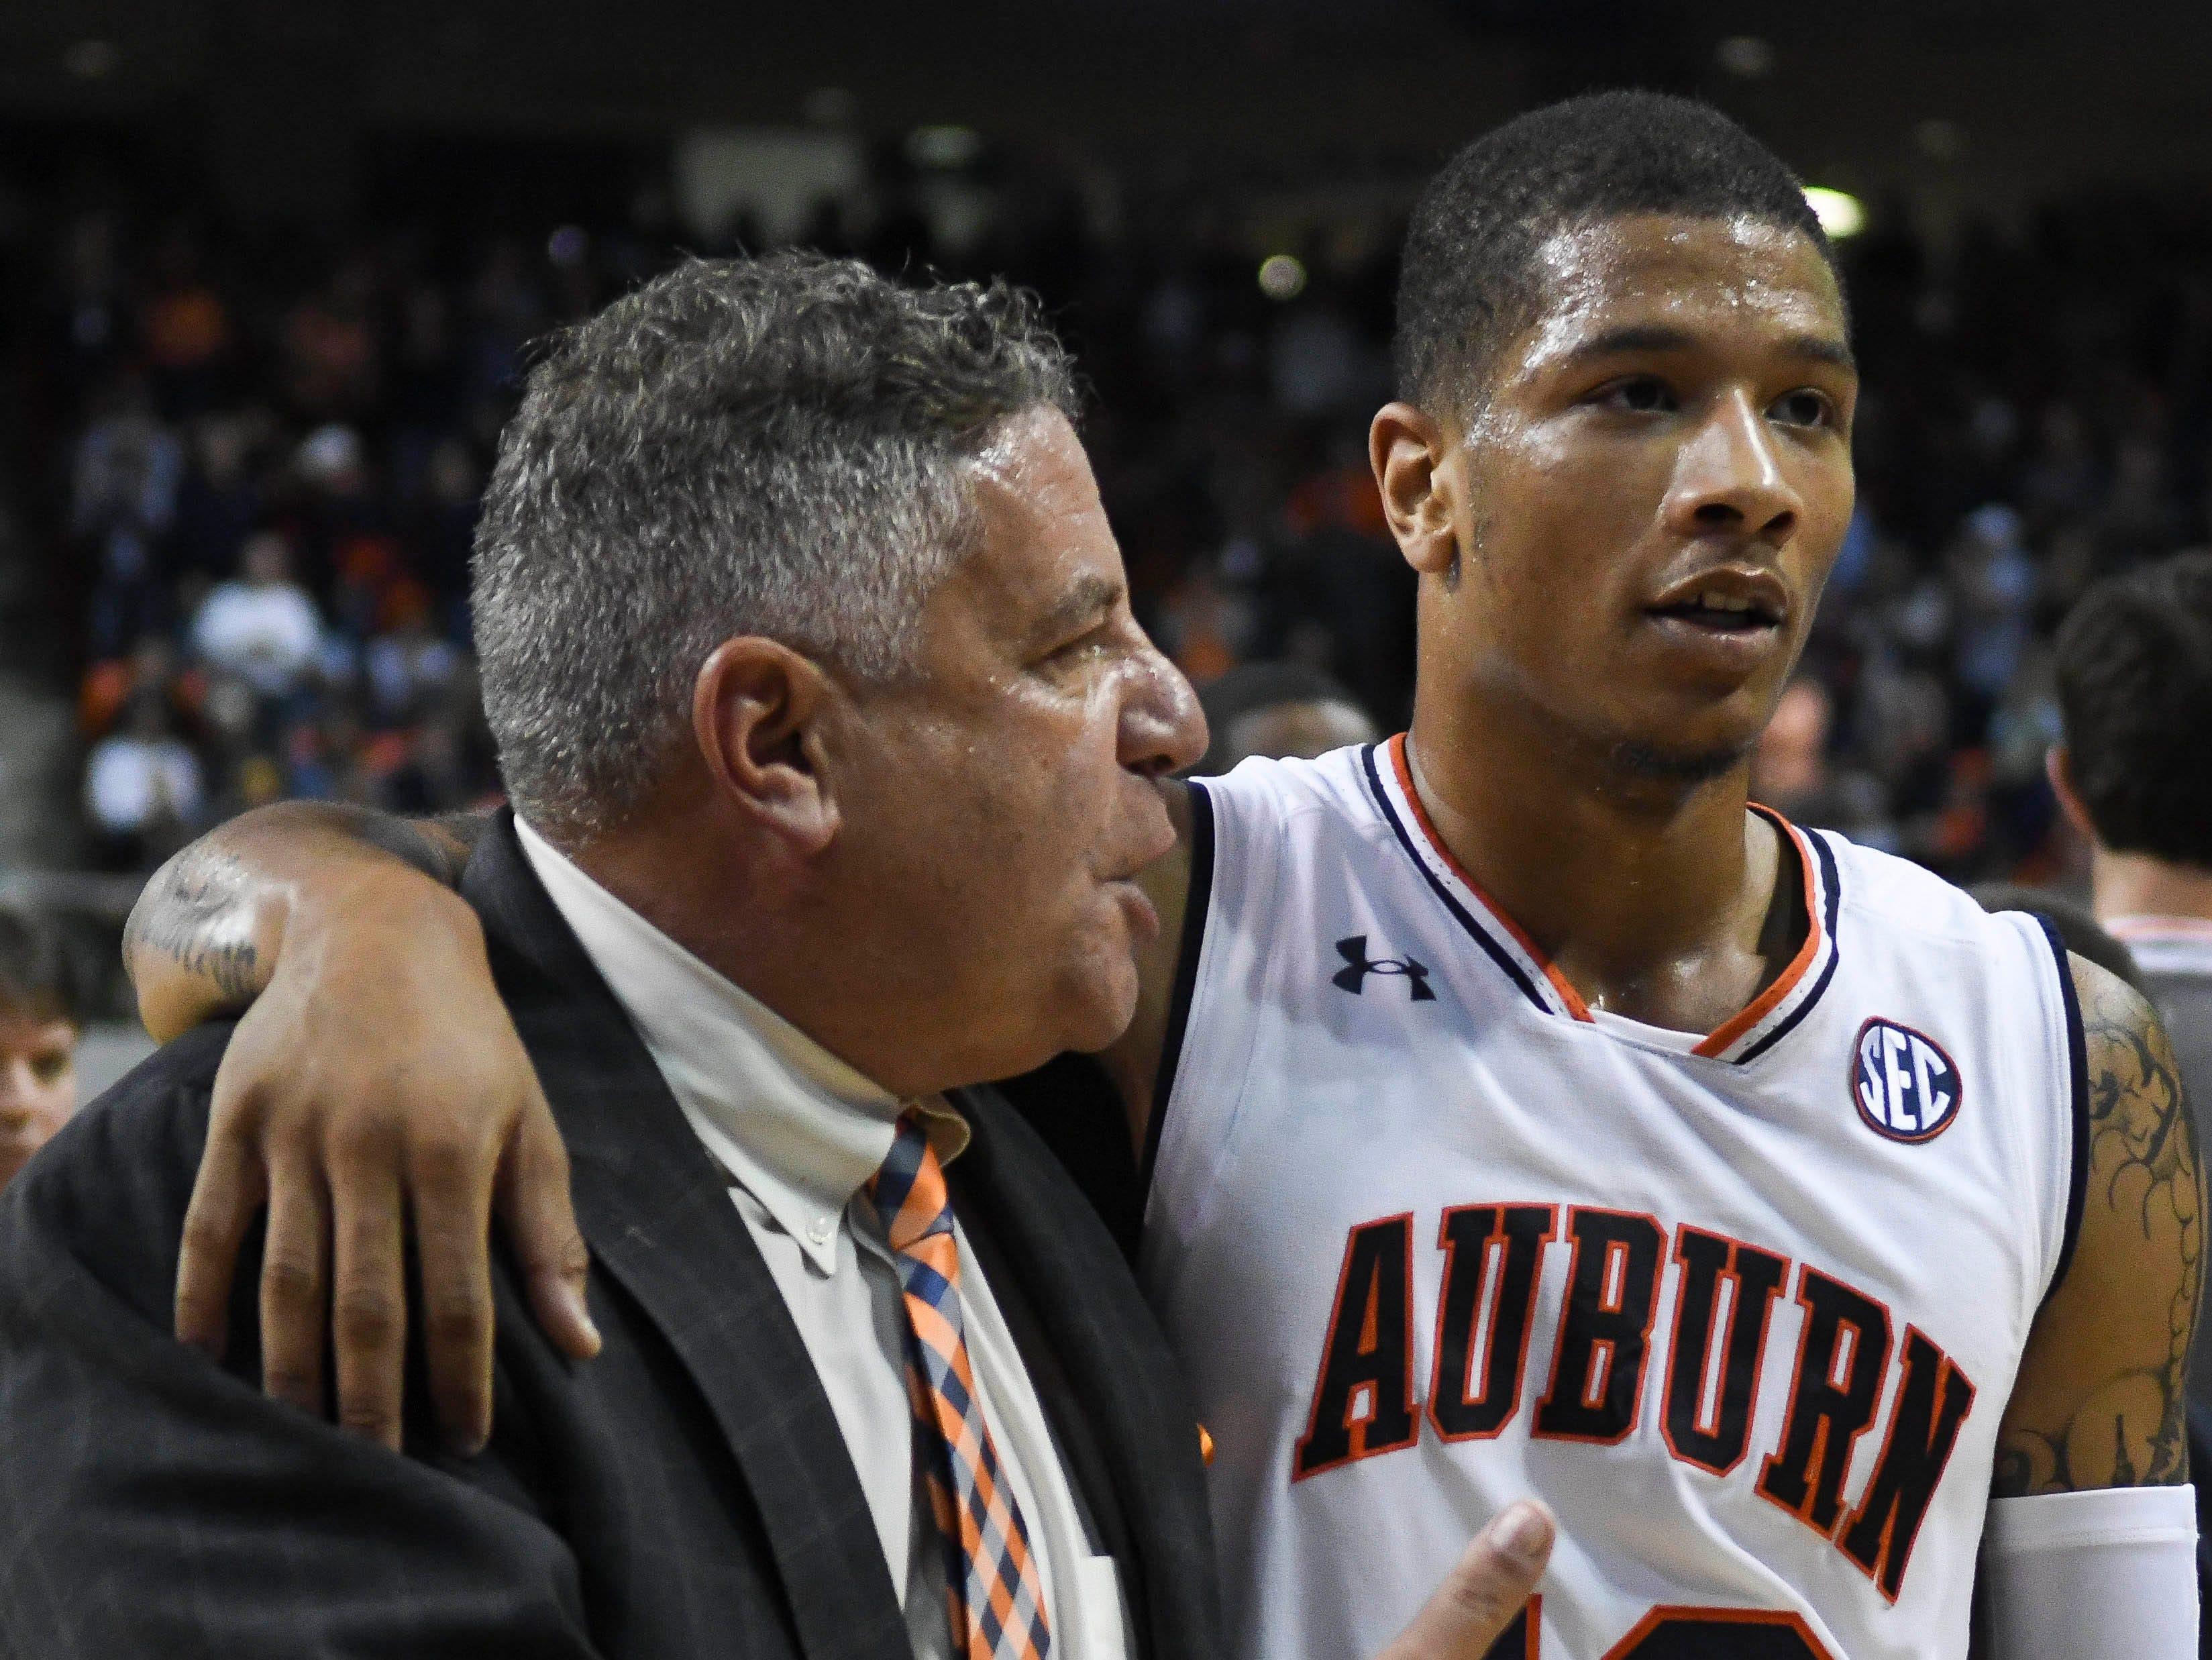 Nov 9, 2018; Auburn, AL, USA; Auburn Tigers head coach Bruce Pearl talks with Auburn Tigers guard Samir Doughty (10) at halftime against the Washington Huskies at Auburn Arena. Mandatory Credit: Julie Bennett-USA TODAY Sports